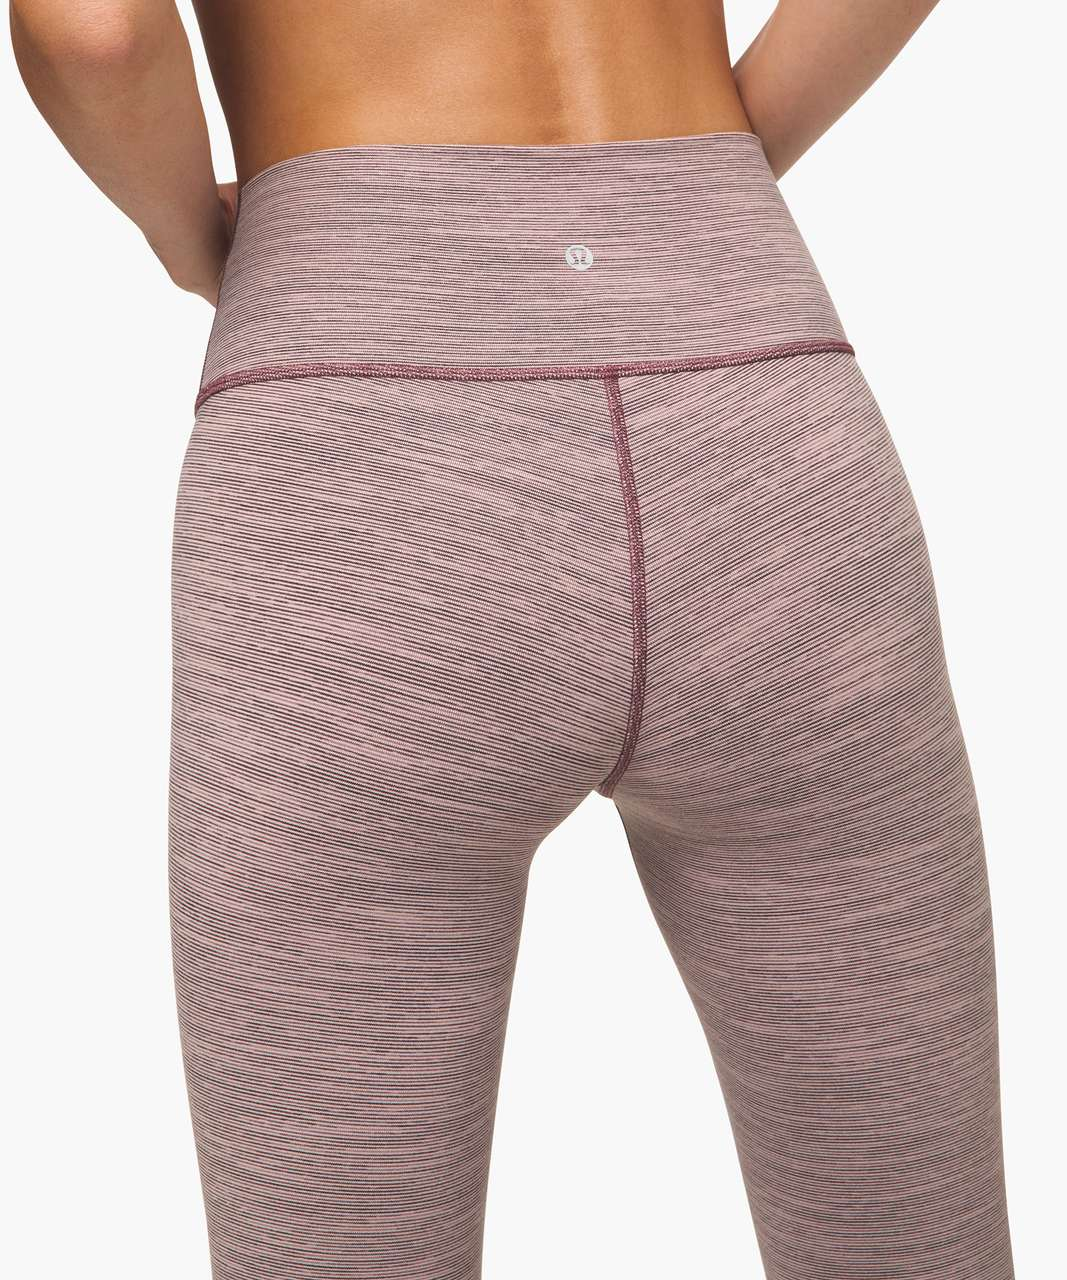 "Lululemon Wunder Under High-Rise Tight 25"" - Wee Are From Space Frosted Mulberry Black Currant"